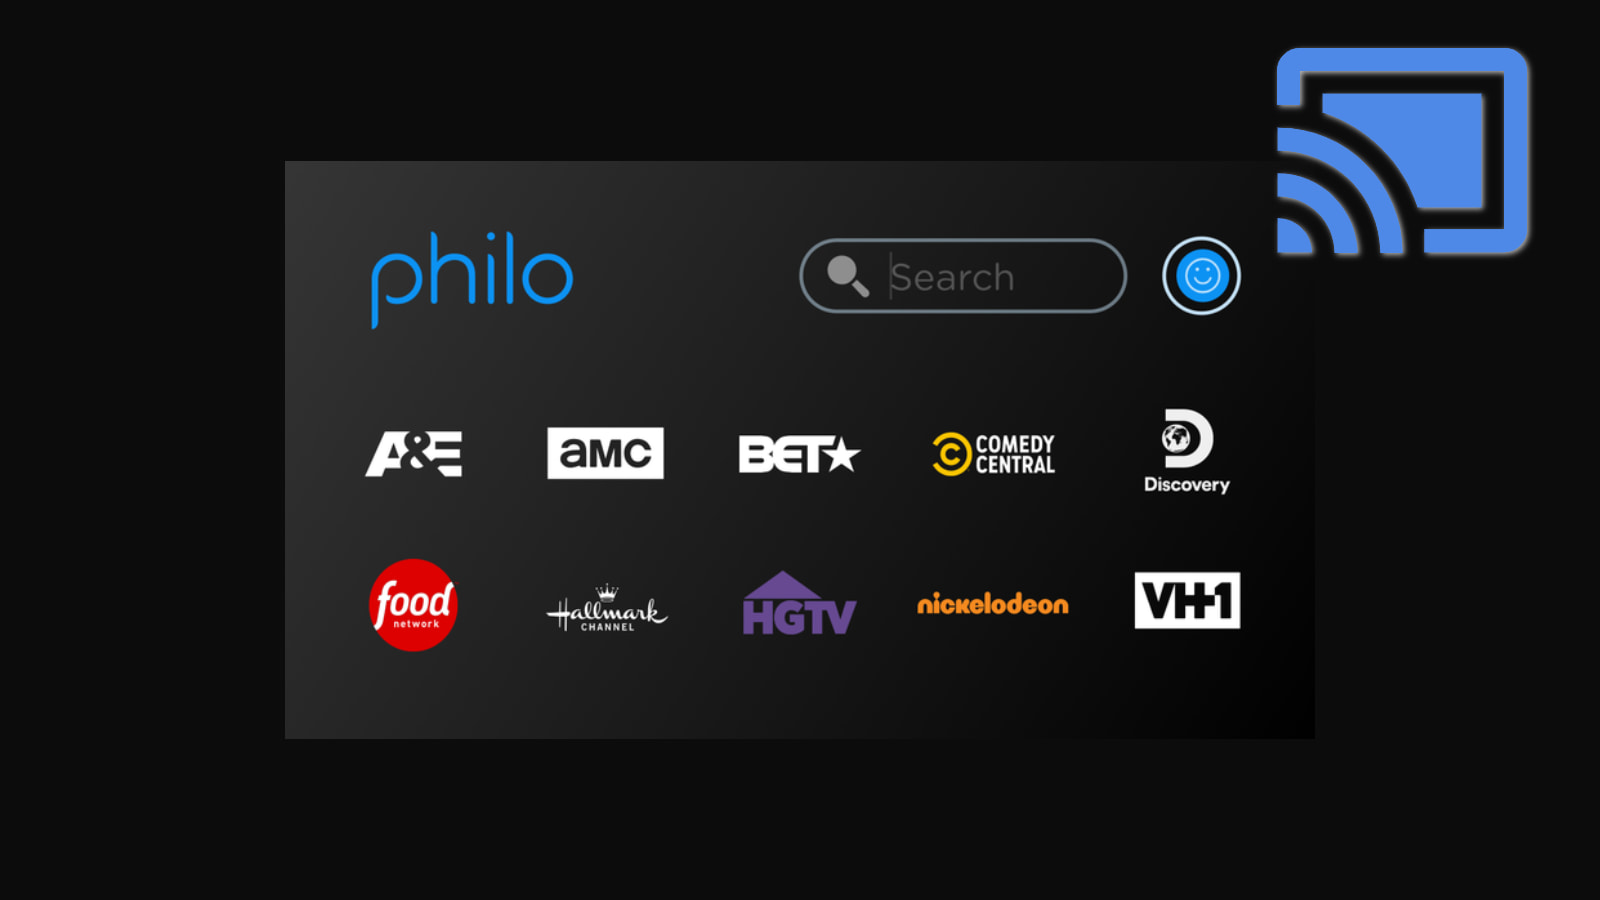 Budget-friendly Philo adds Chromecast support to streaming service